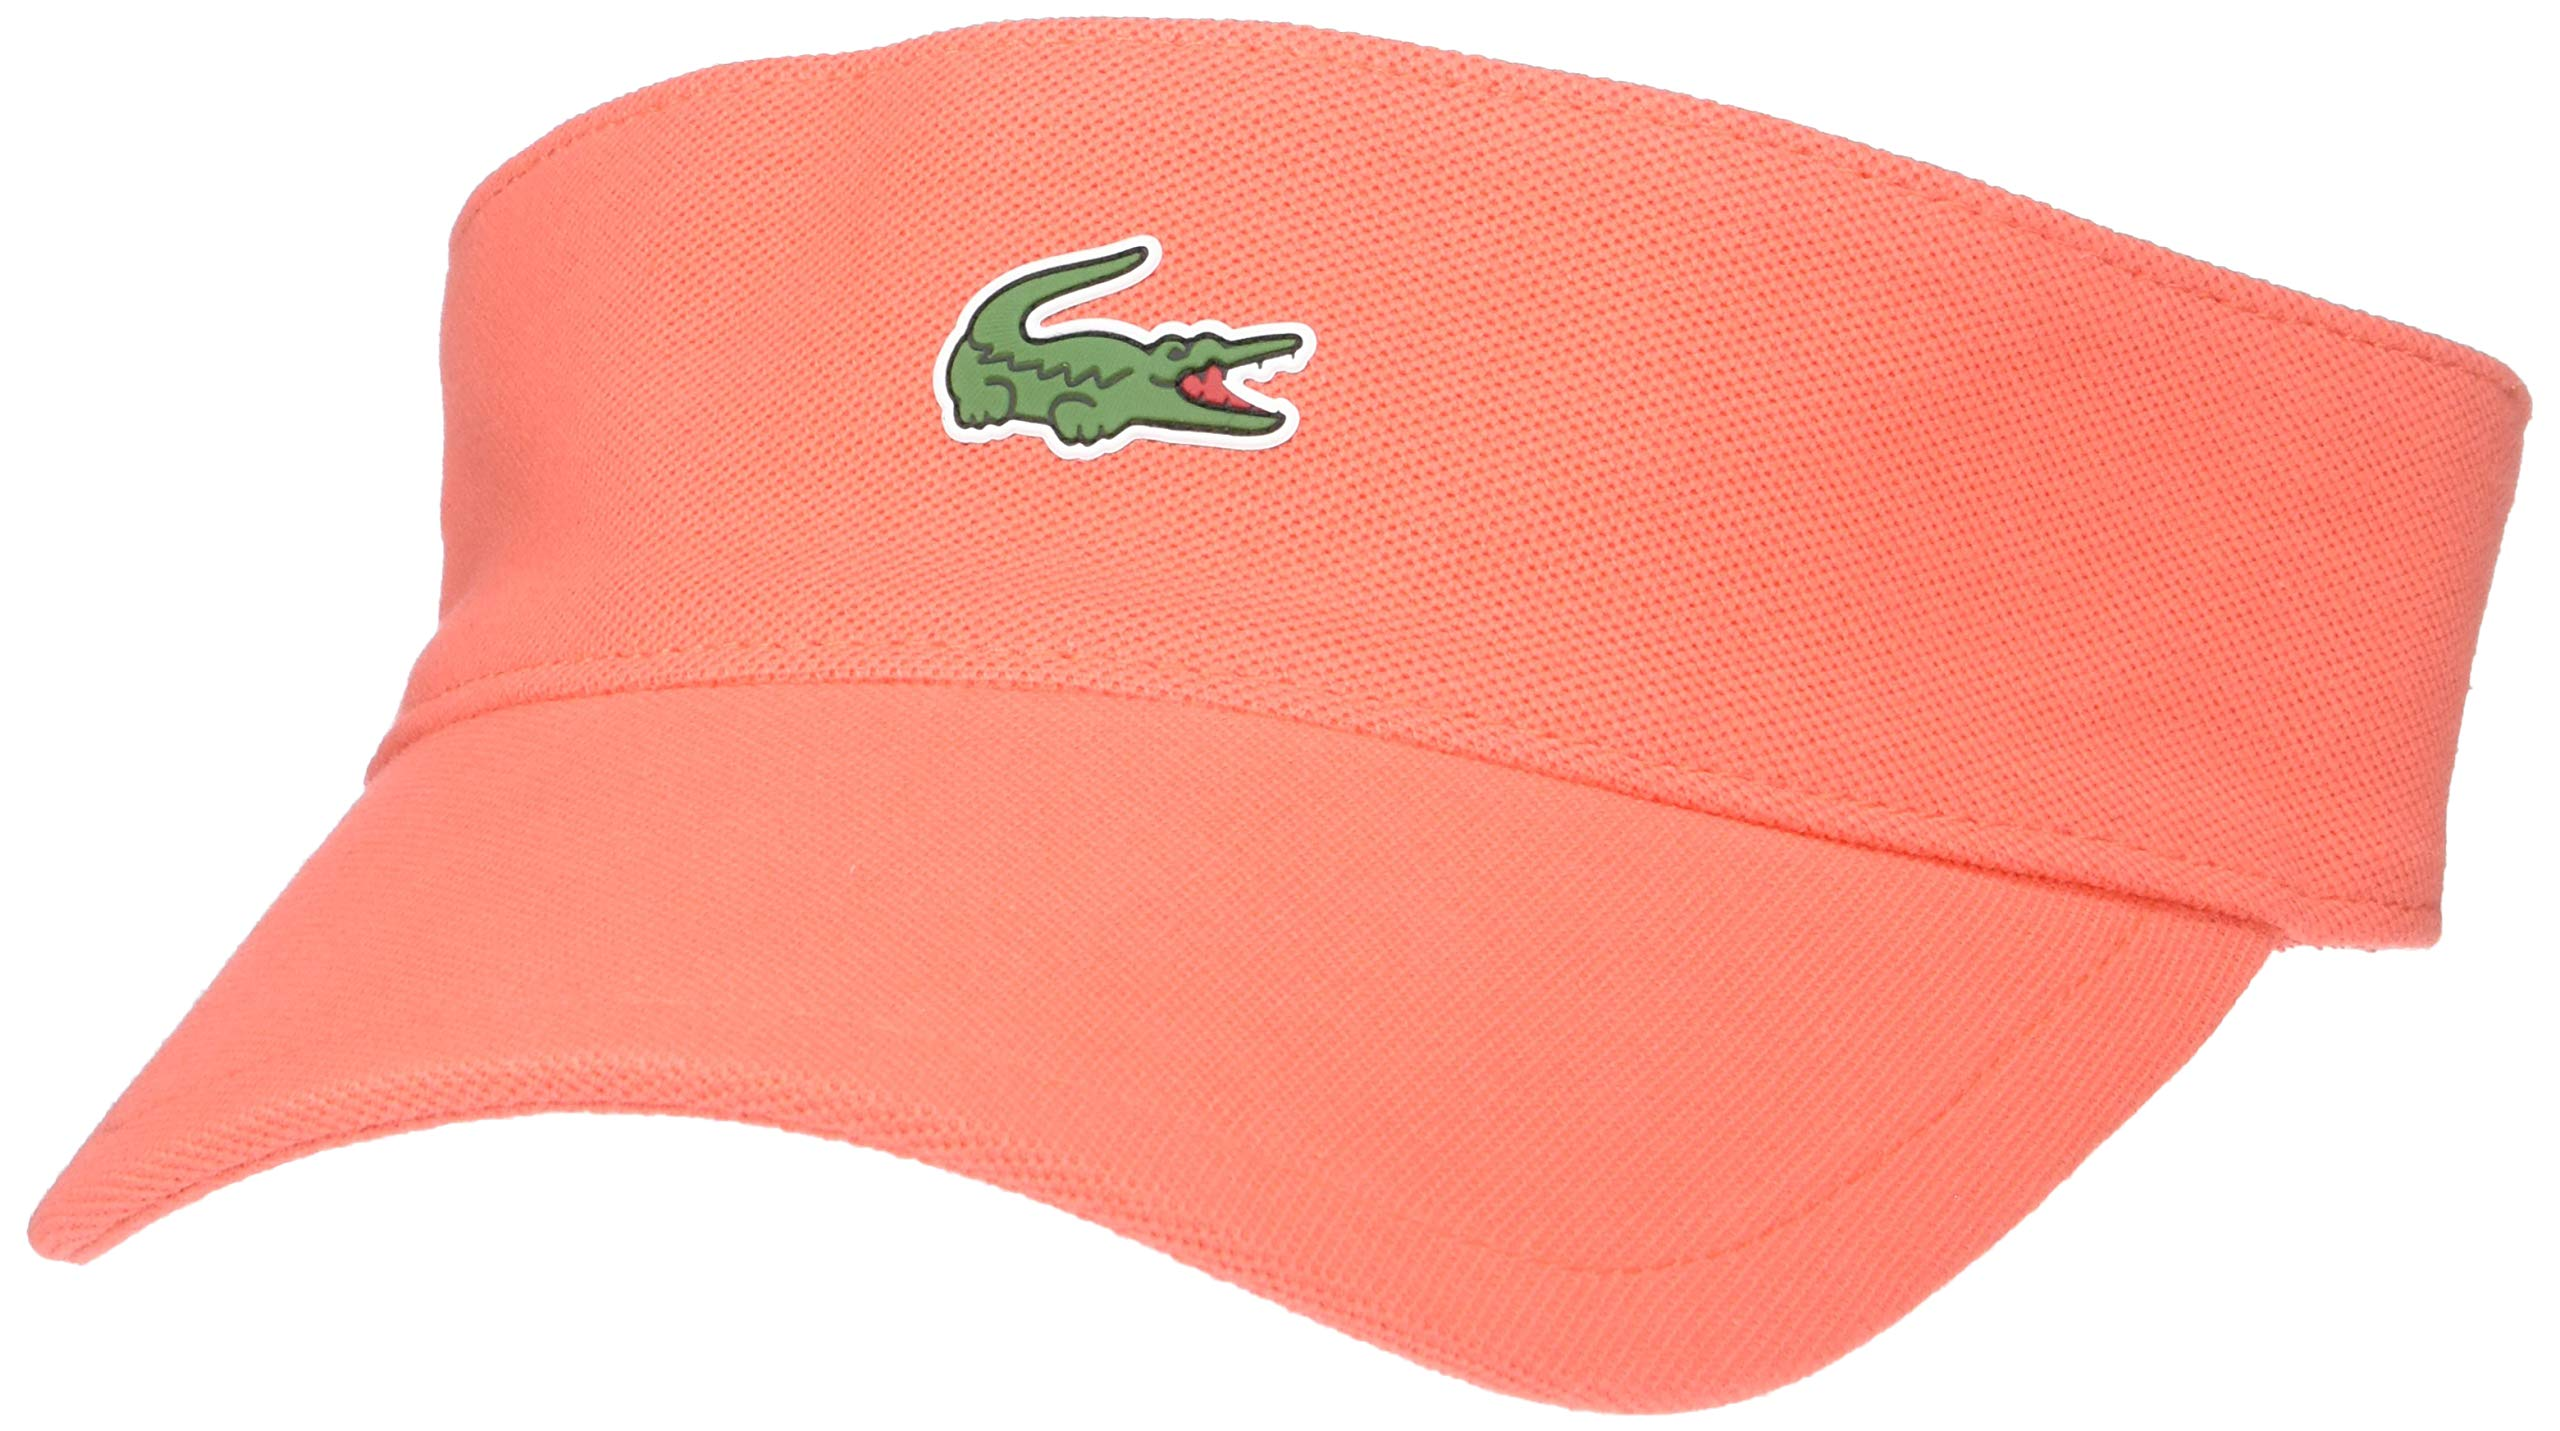 Lacoste Mens Sport Petit Pique Golf Visor, Mango Tree red, ONE by Lacoste